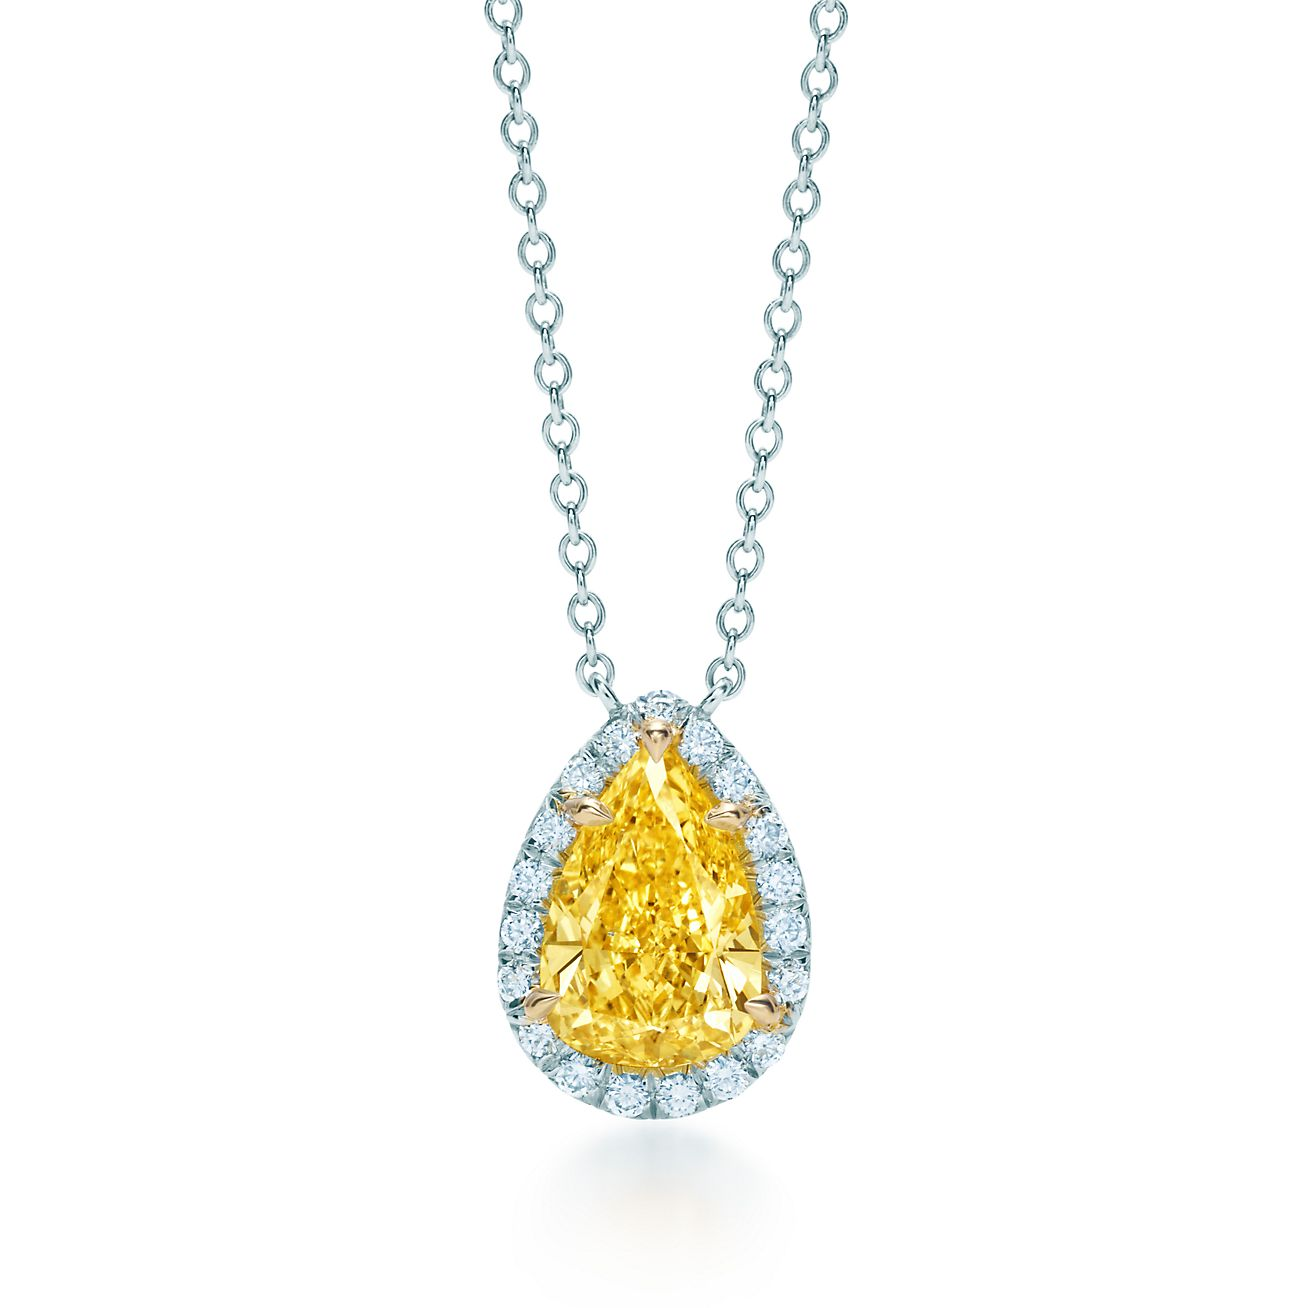 Tiffany soleste yellow and white diamond pendant in platinum and 18k tiffany solesteyellow diamond pendant aloadofball Image collections